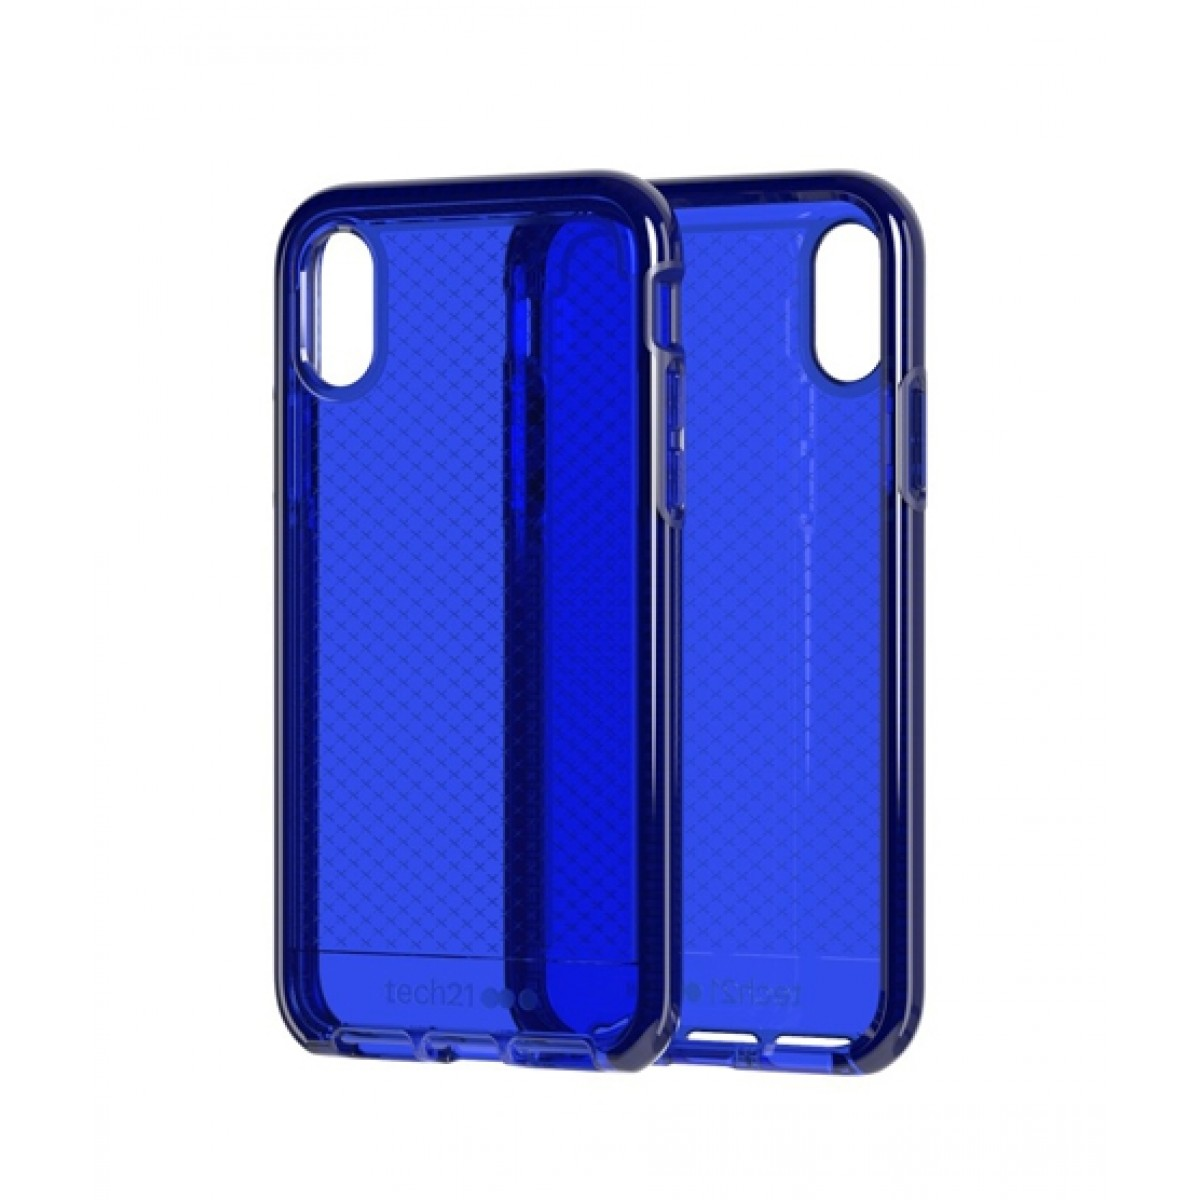 info for a79ef c718d Tech21 Evo Check Midnight Blue Case For iPhone XS Max